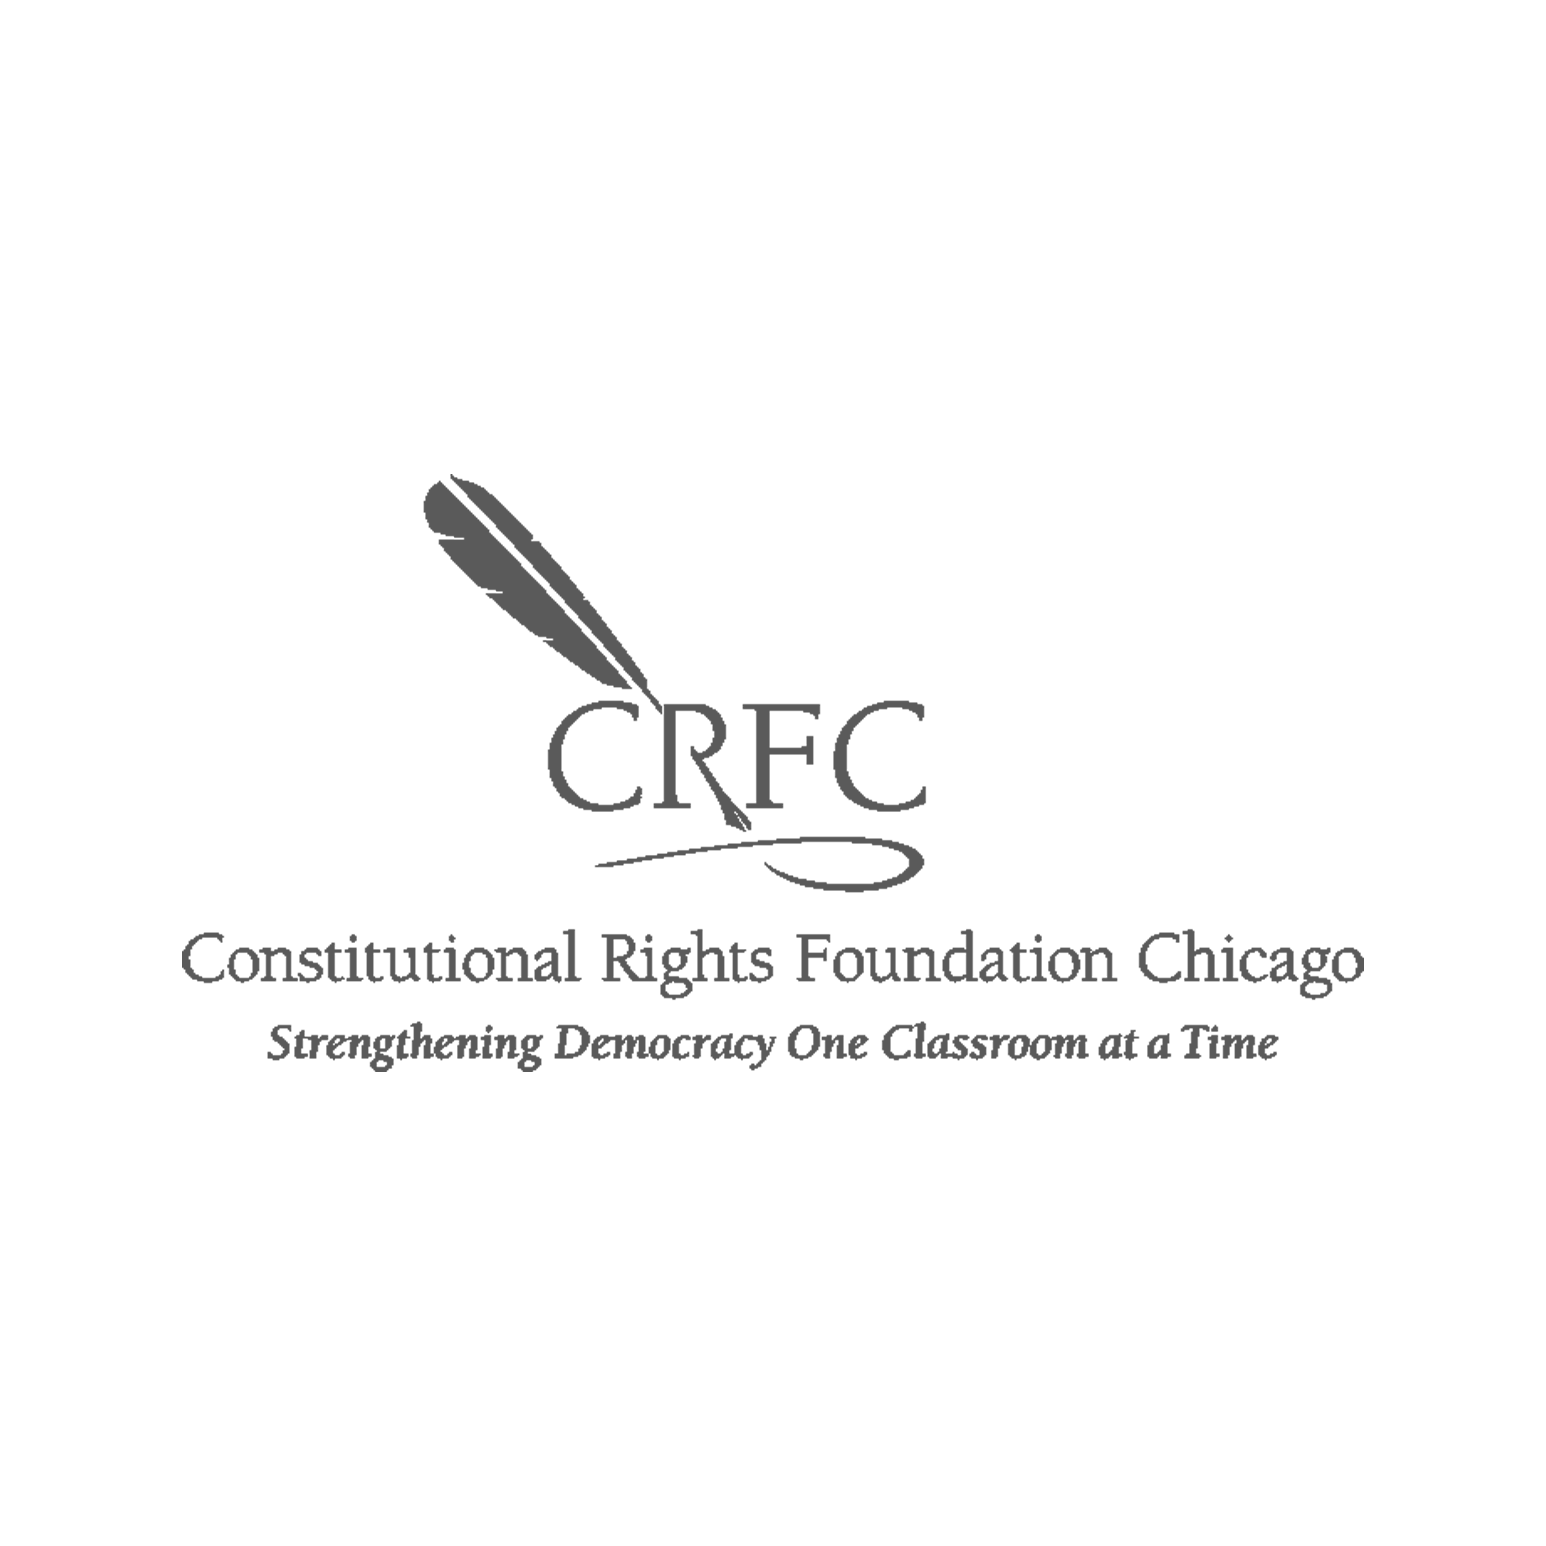 Constitutional Rights Foundation Chicago